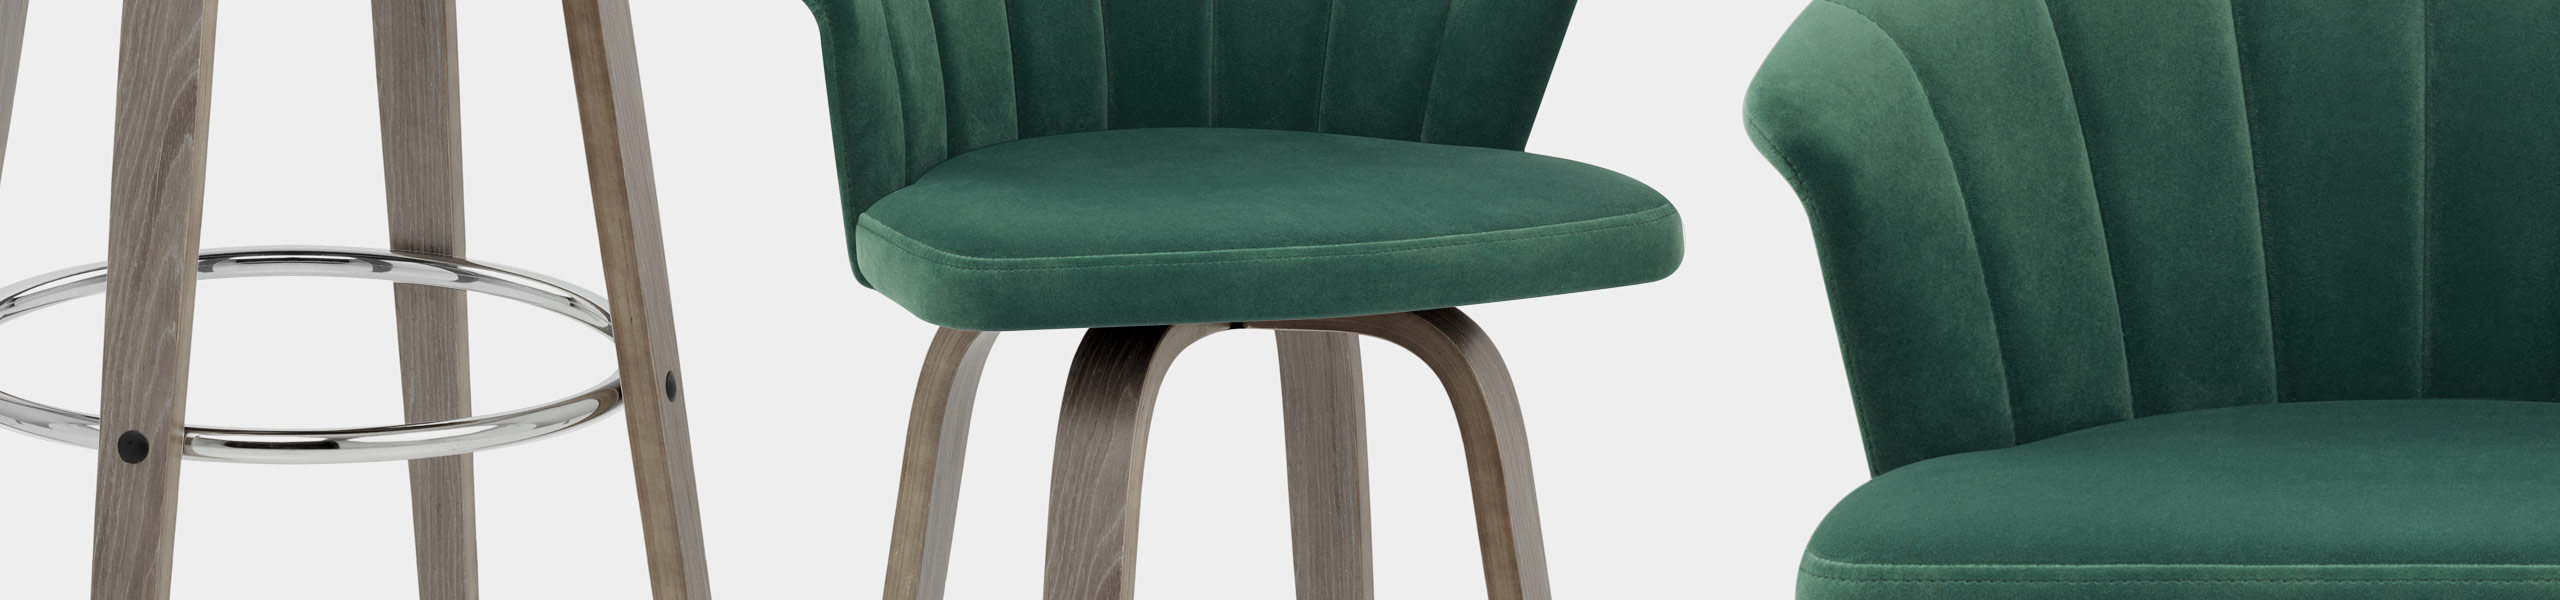 Concerto Wooden Stool Green Velvet Video Banner